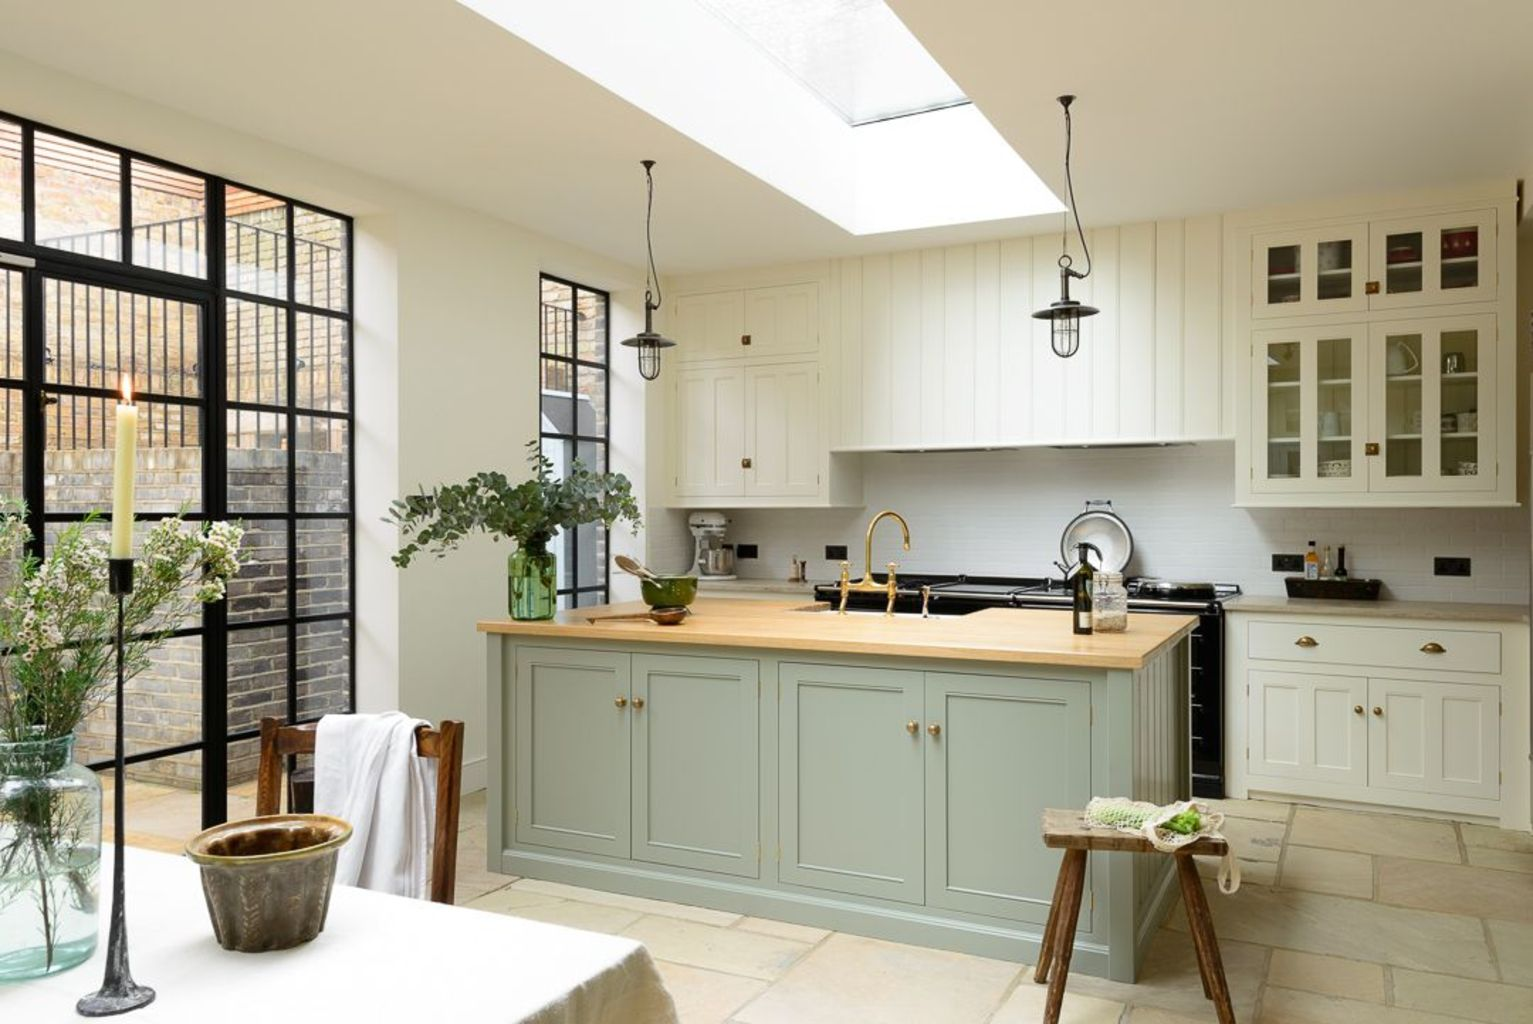 Natural Stone Floor Ideas that Looks Amazing in Traditional and Vintage Kitchen Styles Part 18 & Natural Stone Flooring Adorning Delightful Kitchens Textures ...